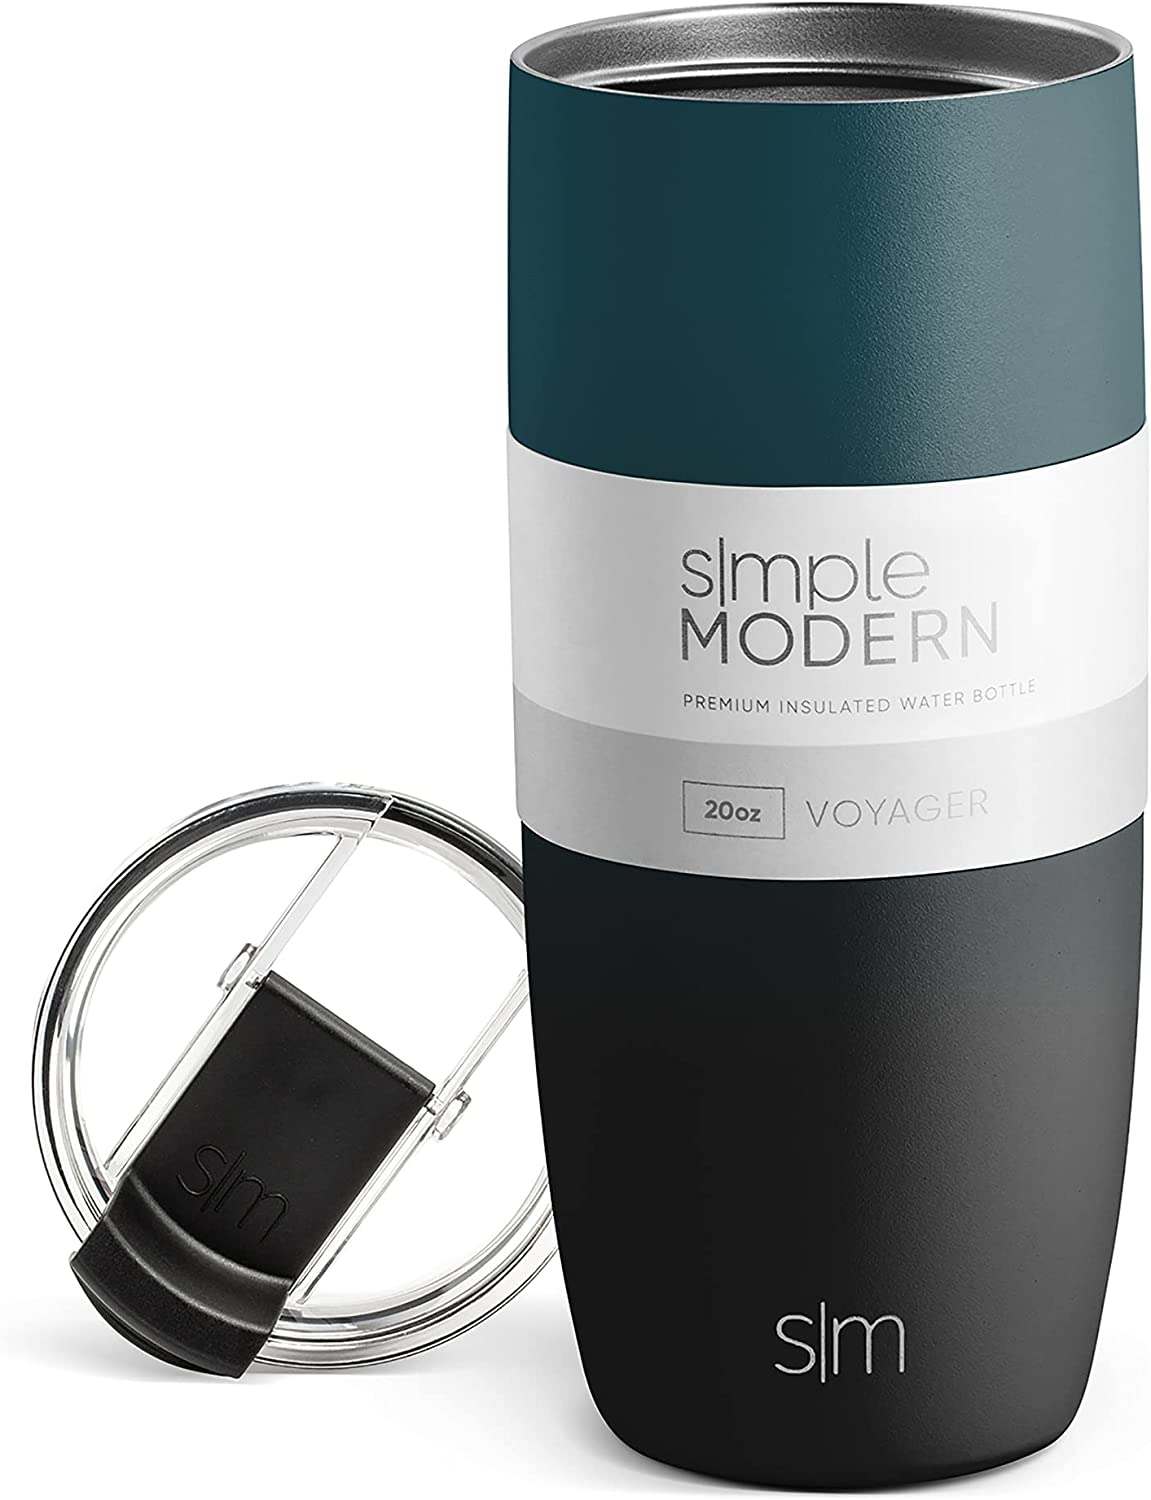 Simple Modern Voyager Insulated Travel Coffee Mug Tumbler with C